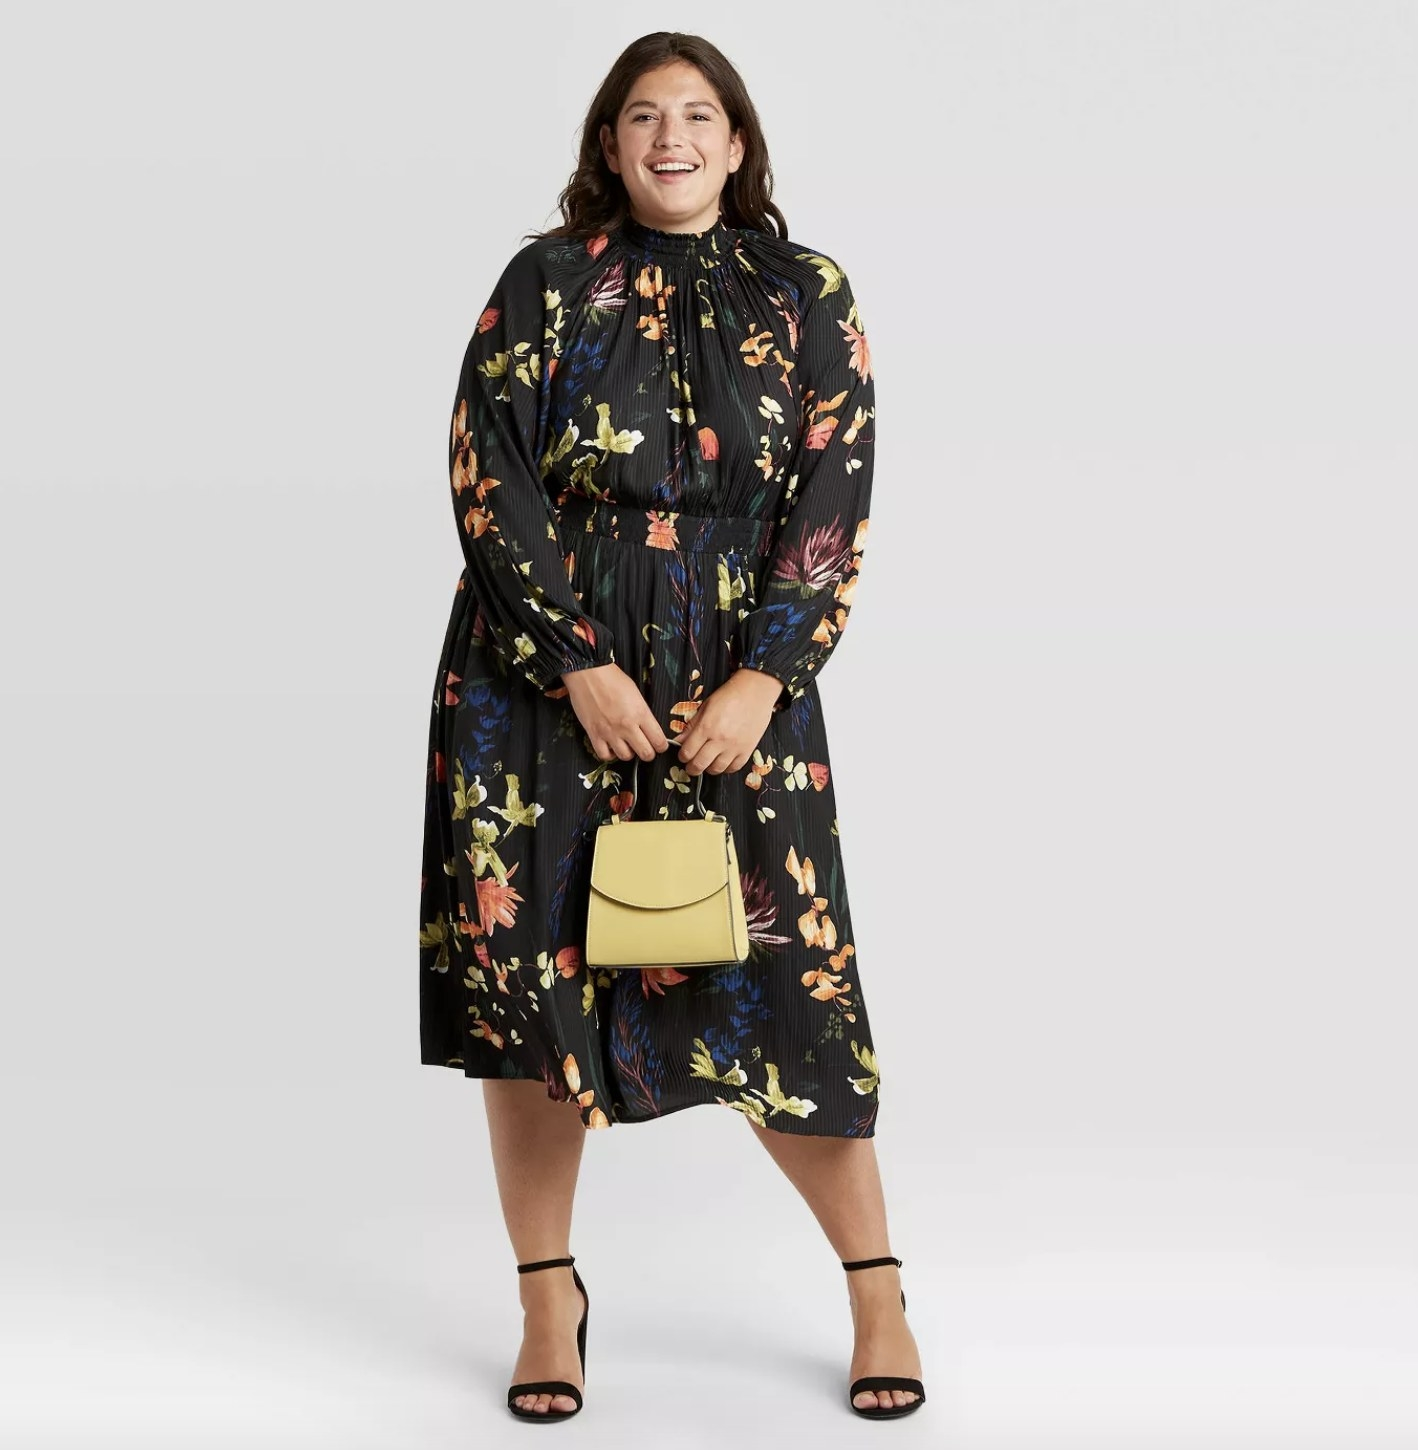 long-sleeve floral smocked midi dress with colorful flowers